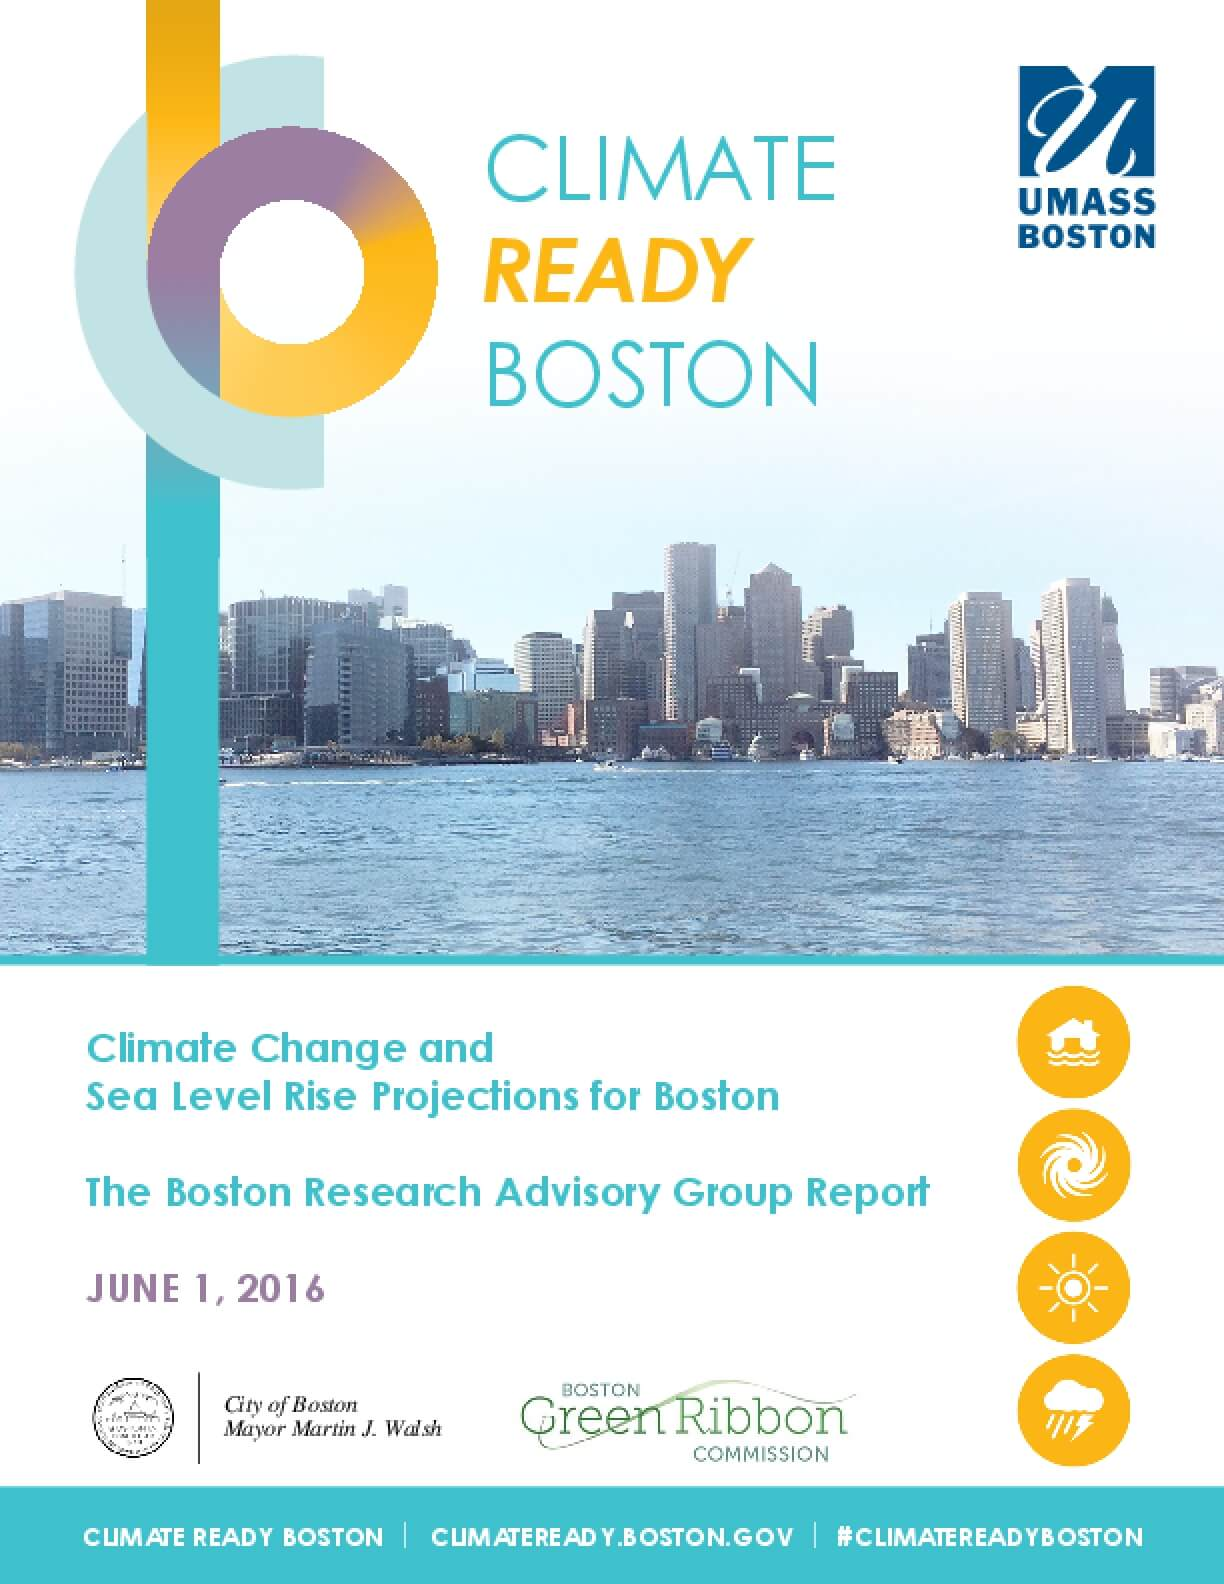 Climate Change and Sea Level Rise Projections for Boston